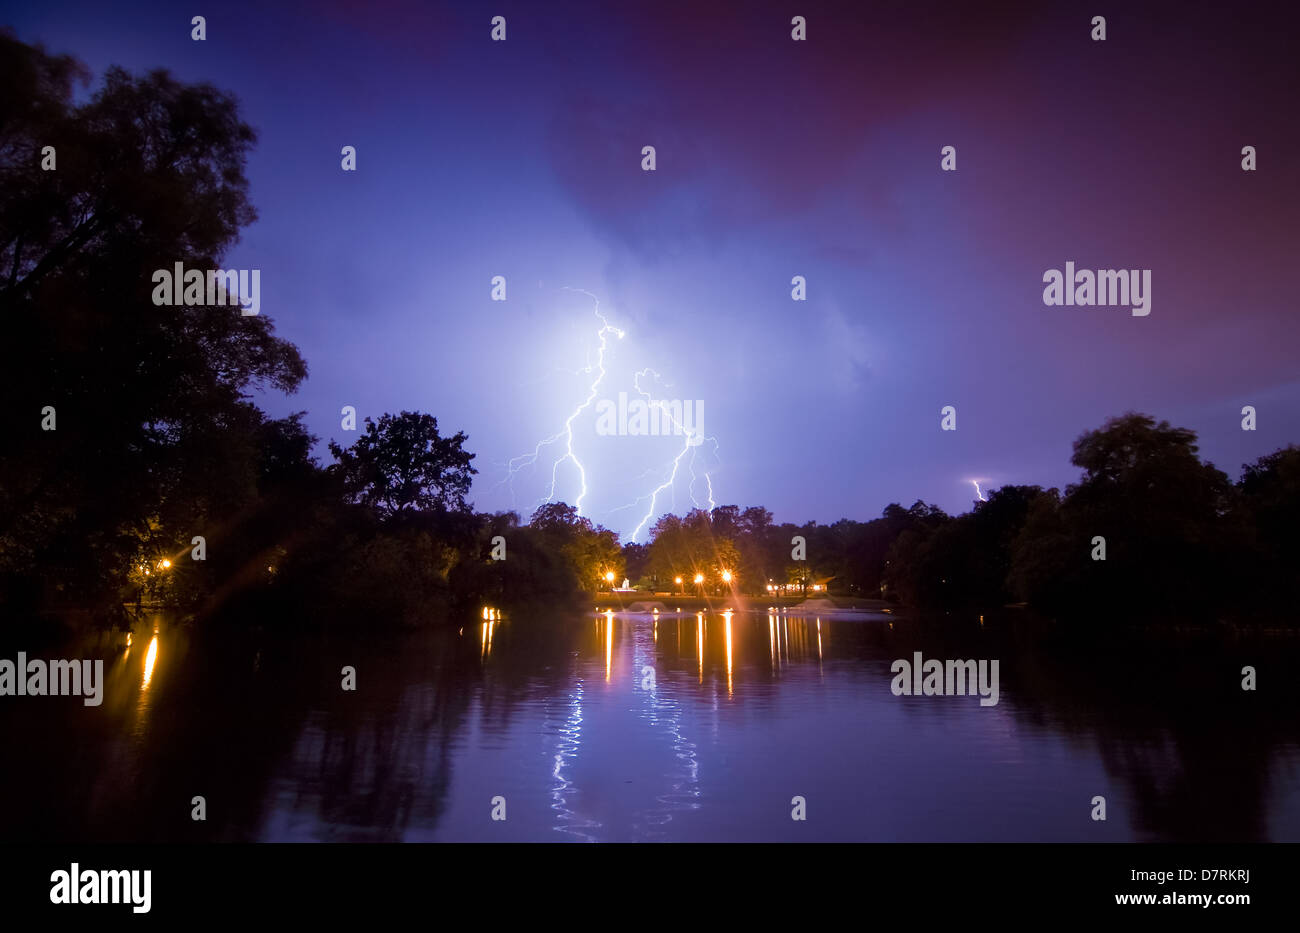 Night storm. Lightning over the pond and their reflections in the water. - Stock Image